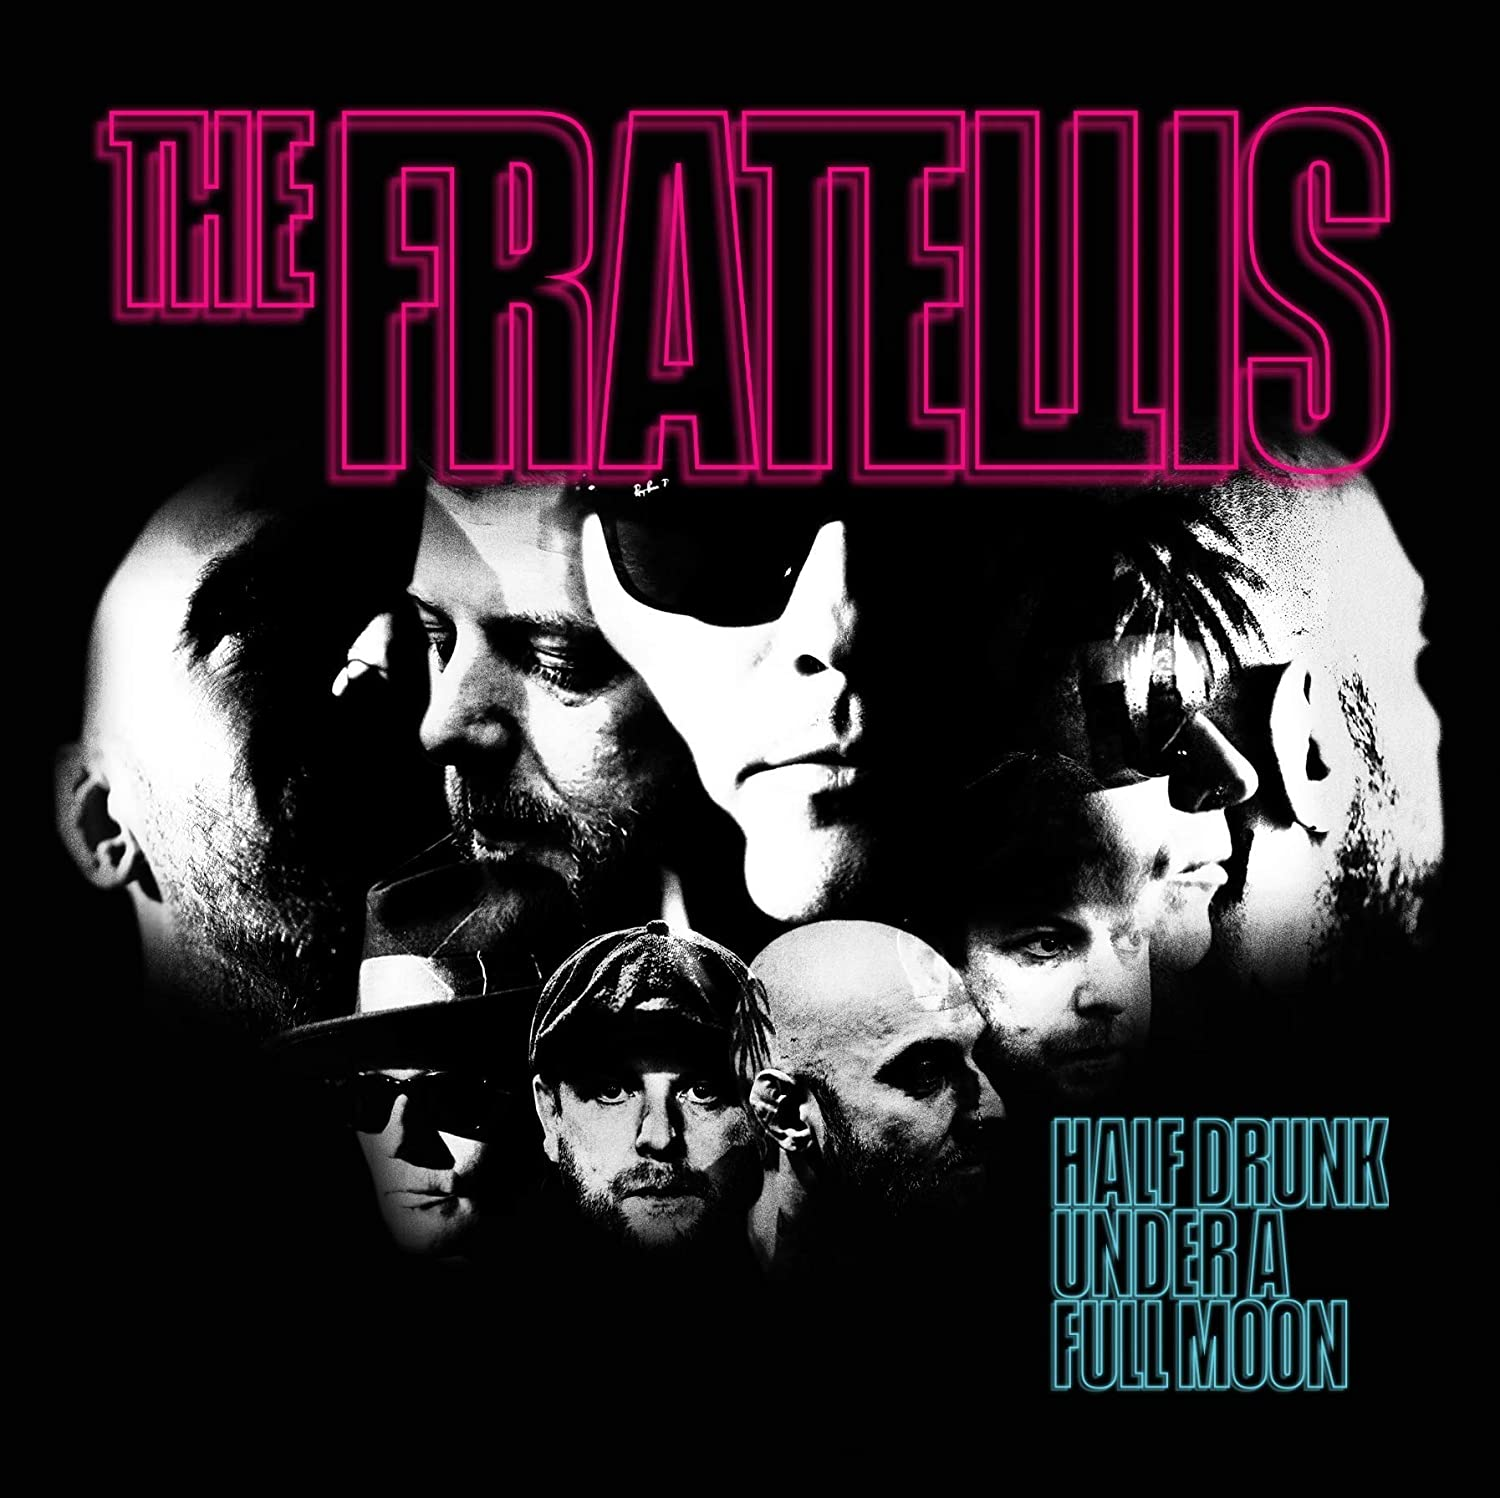 The Fratellis - Half Drunk Under a Full Moon - Amazoncom Music